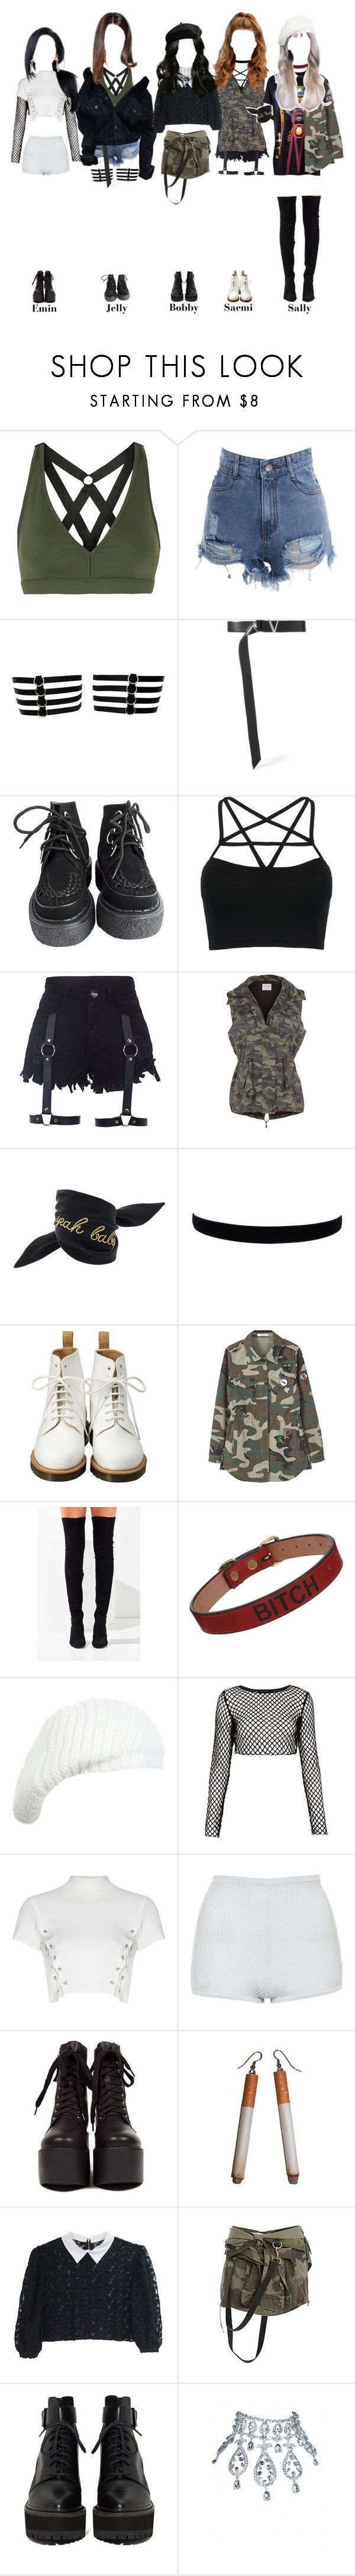 """HIGHLIGHT MAKER 